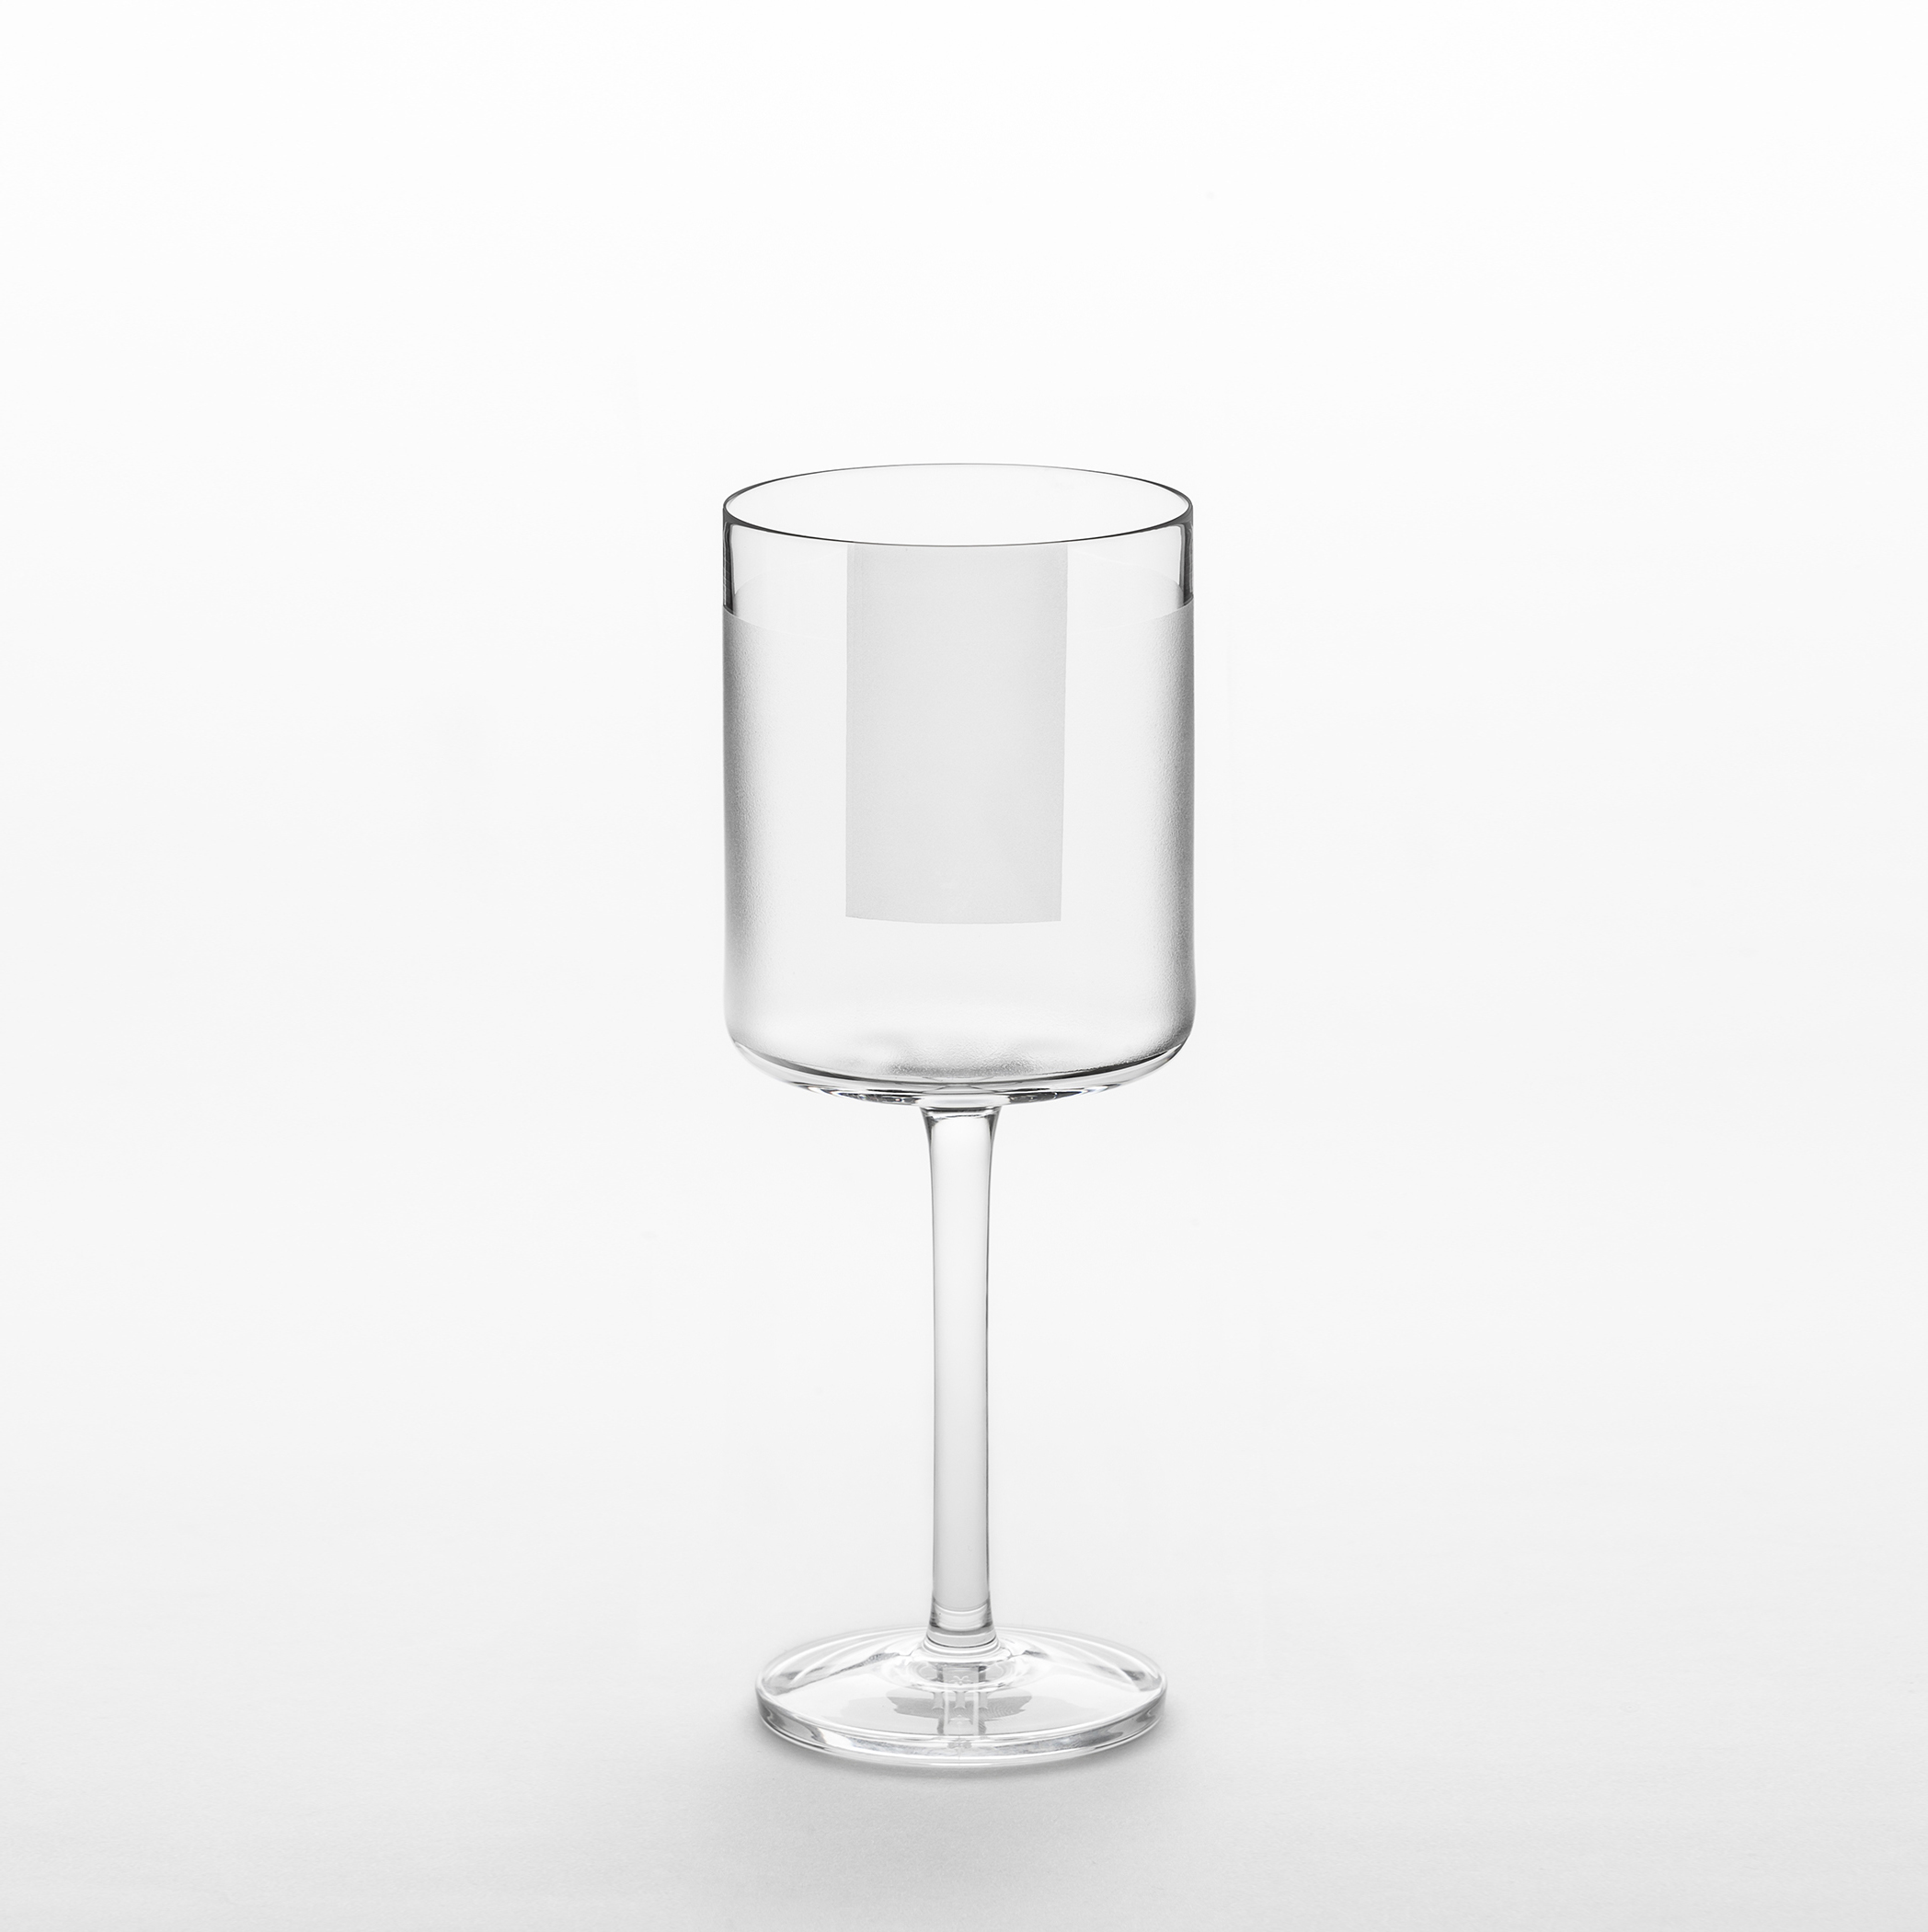 """Element White Wine Glasses - Set of 2 - A rich assemblage of graphic markings defines the """"ELEMENTS"""" series of lead crystal. Cuts and textures of varying depth and intensity are employed across glasses to create a landscape of layered pattern that is fresh and seductive; a whole new take on the decoration of cut crystal. Sold as a set of 2  